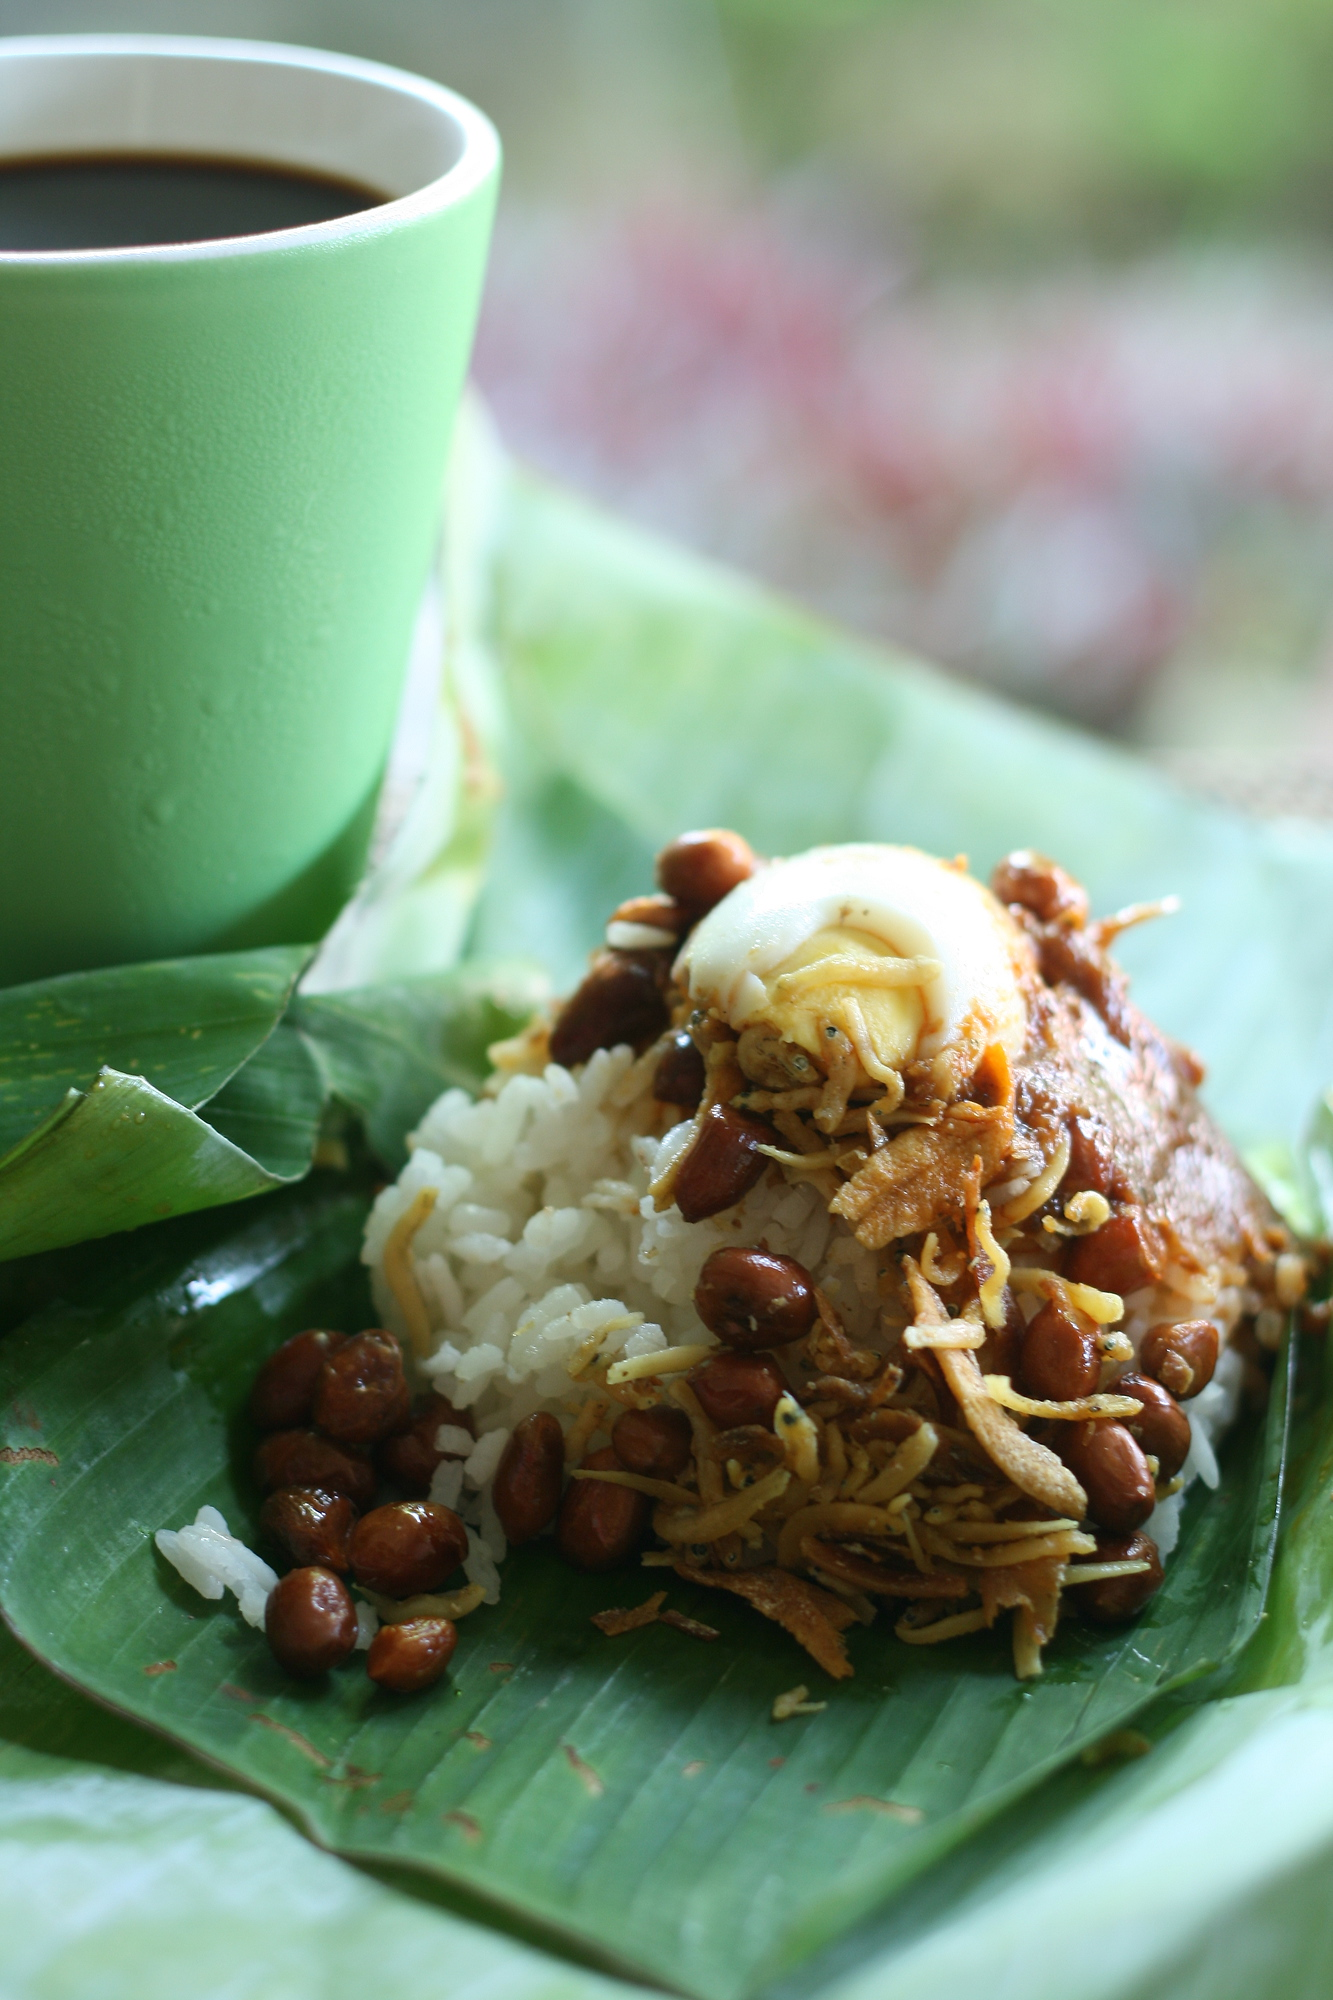 Nasi lemak is one of 23 Indonesian foods you need to try, discover what makes this rice so tasty and what other foods in Indonesia to try.